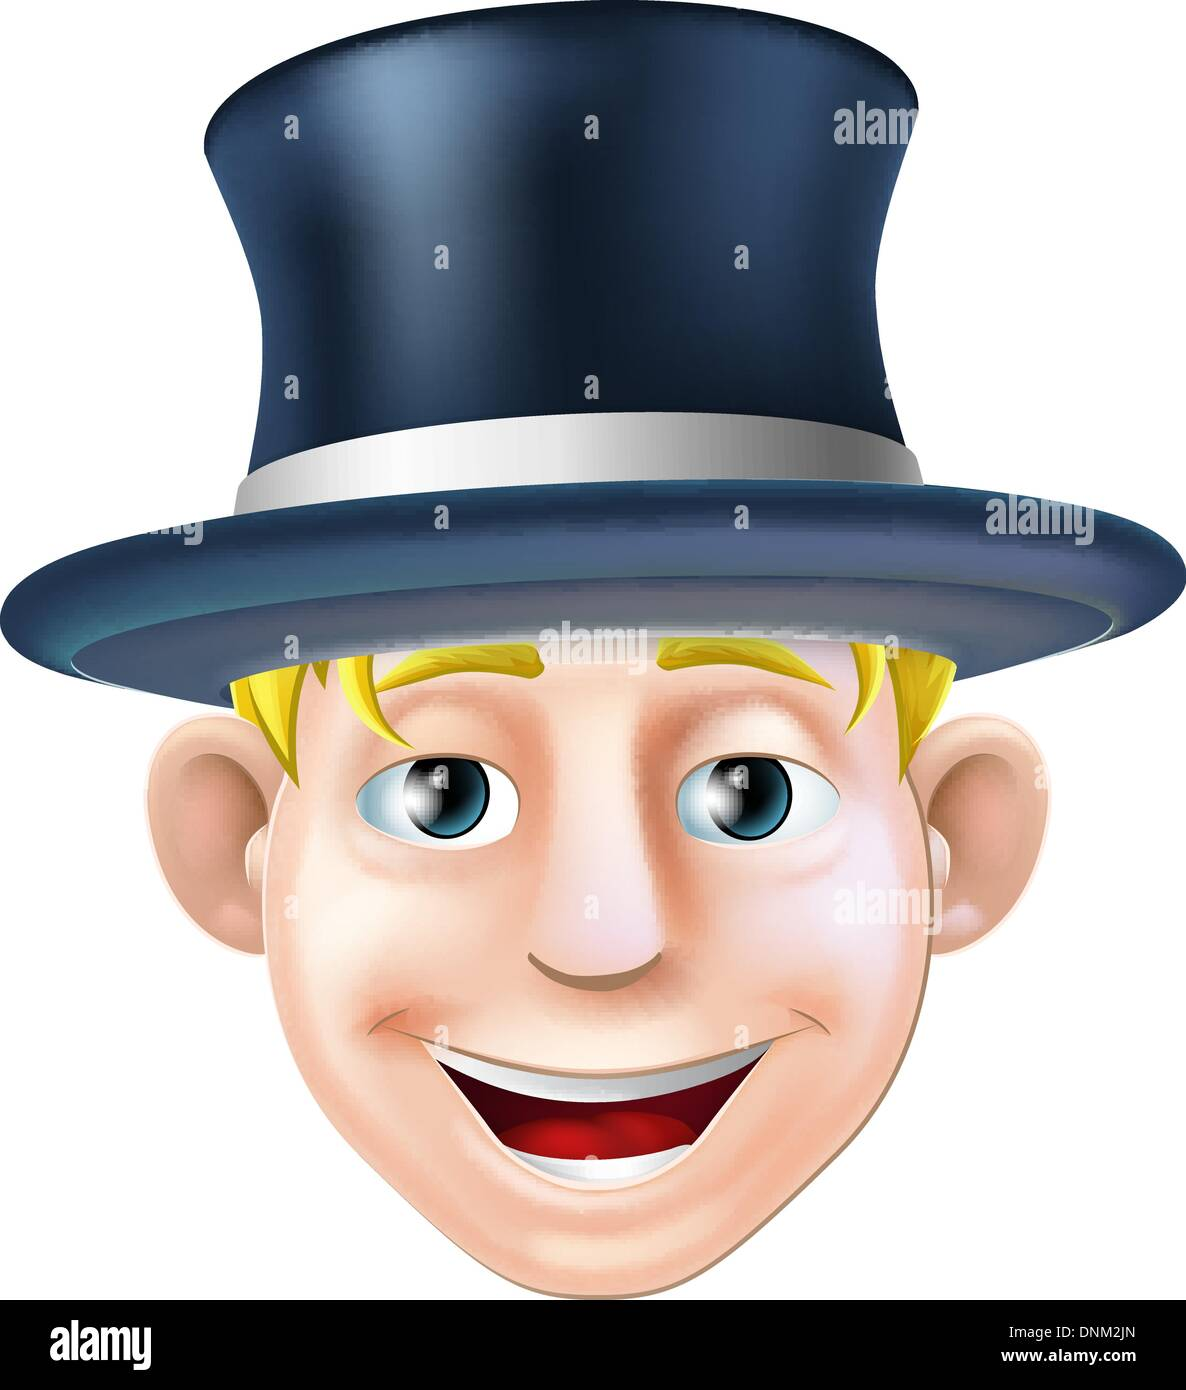 An illustration of a cartoon character wearing a top hat or stove pipe hat - Stock Vector